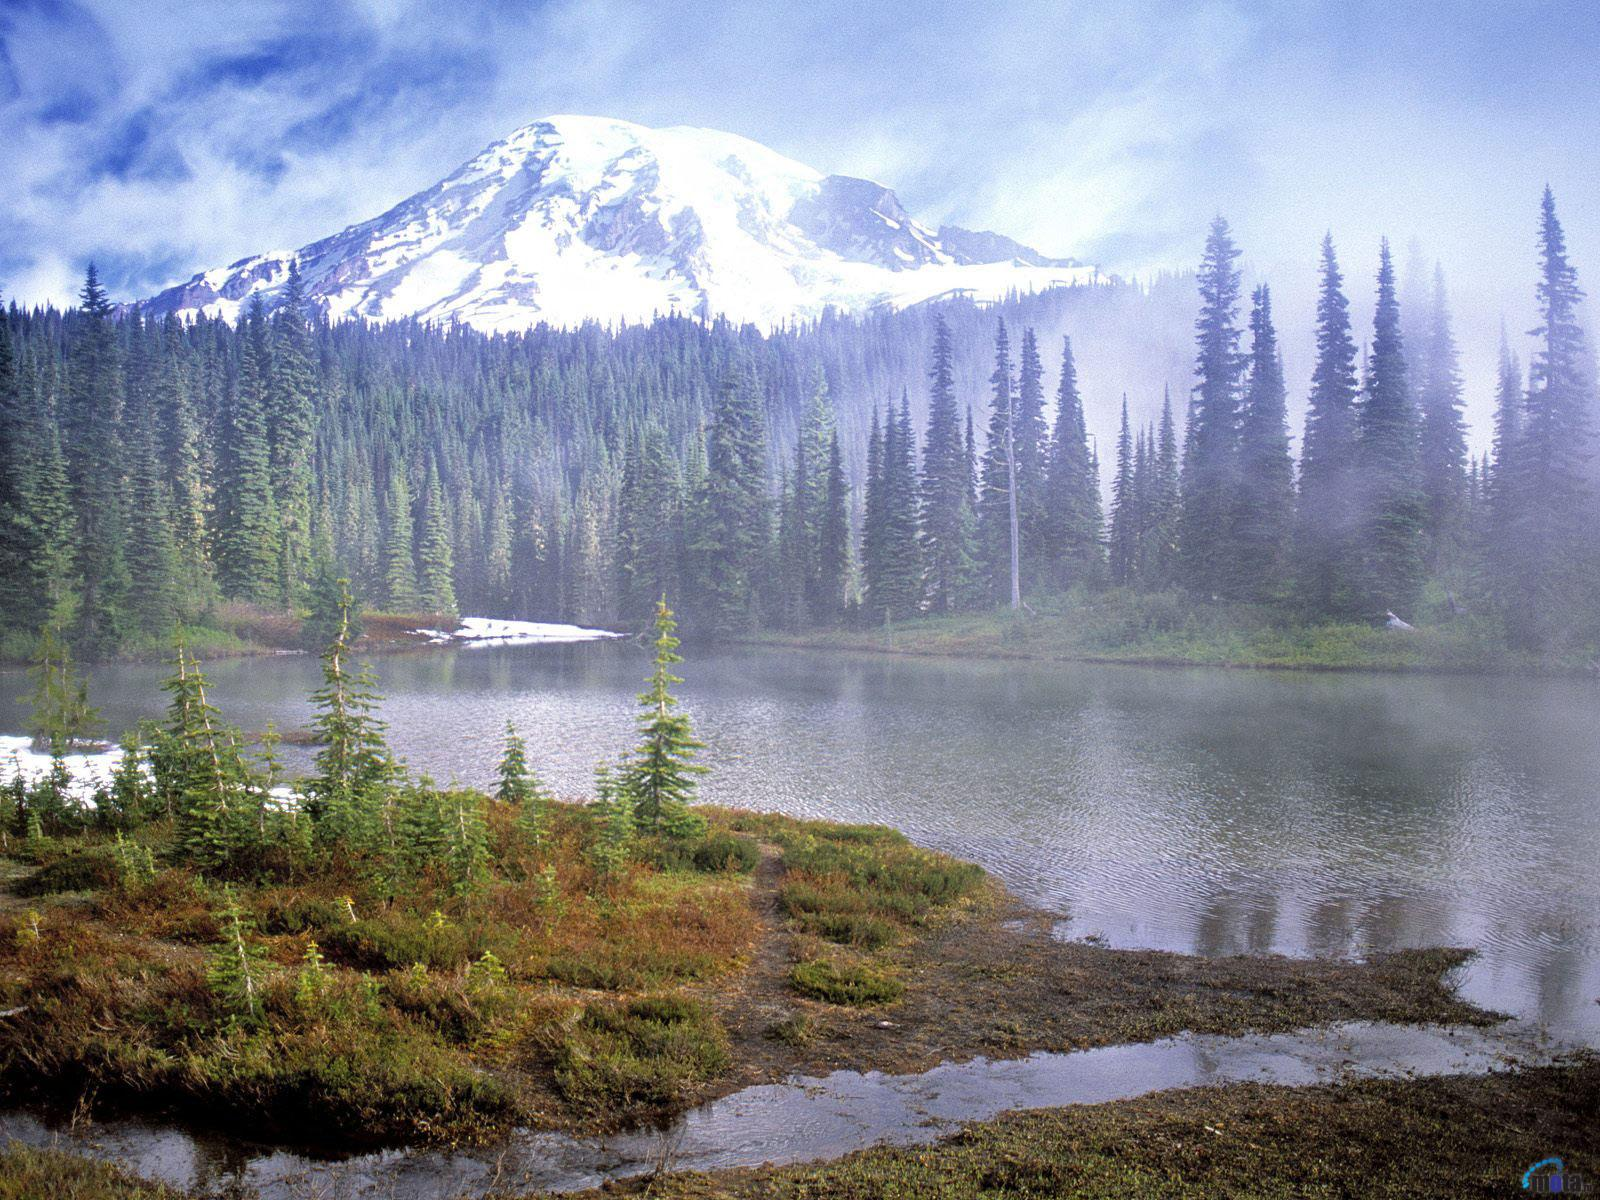 Download Wallpaper Mount Rainier National Park Washington 1600 x 1600x1200